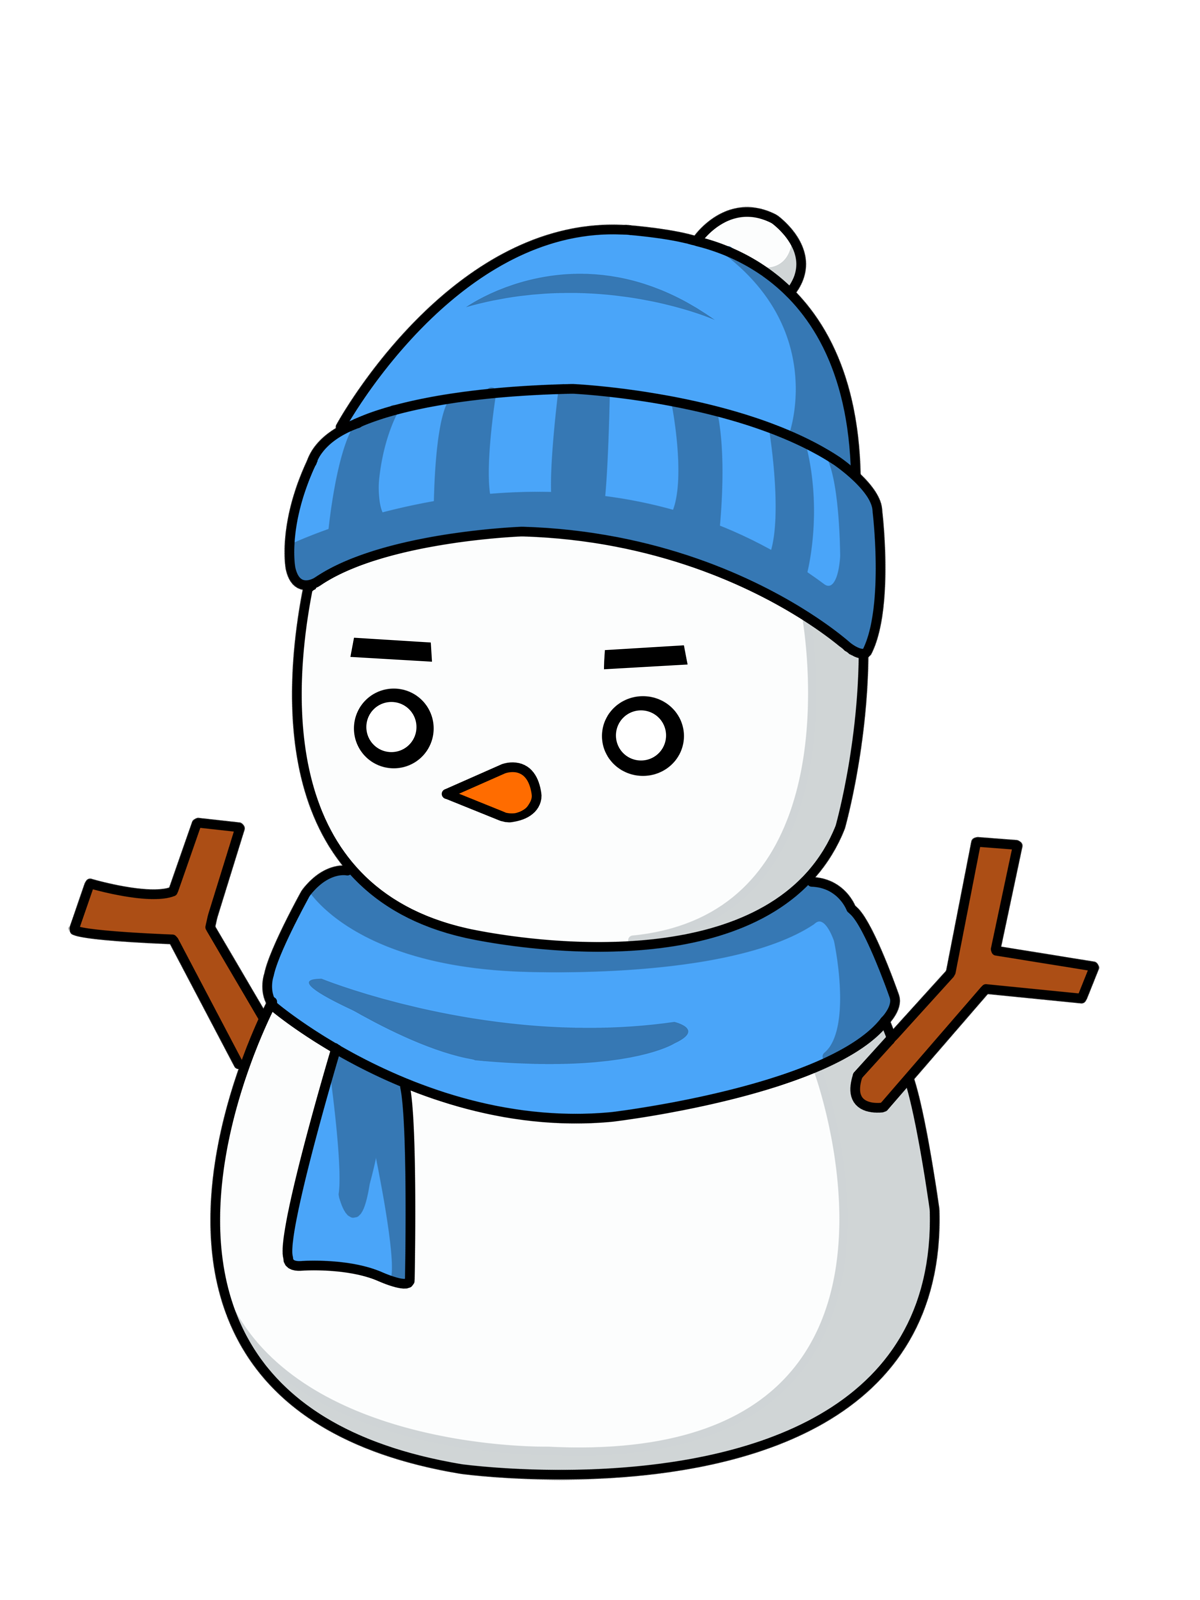 Eskimo drawing man. Arctic clipart inuit free